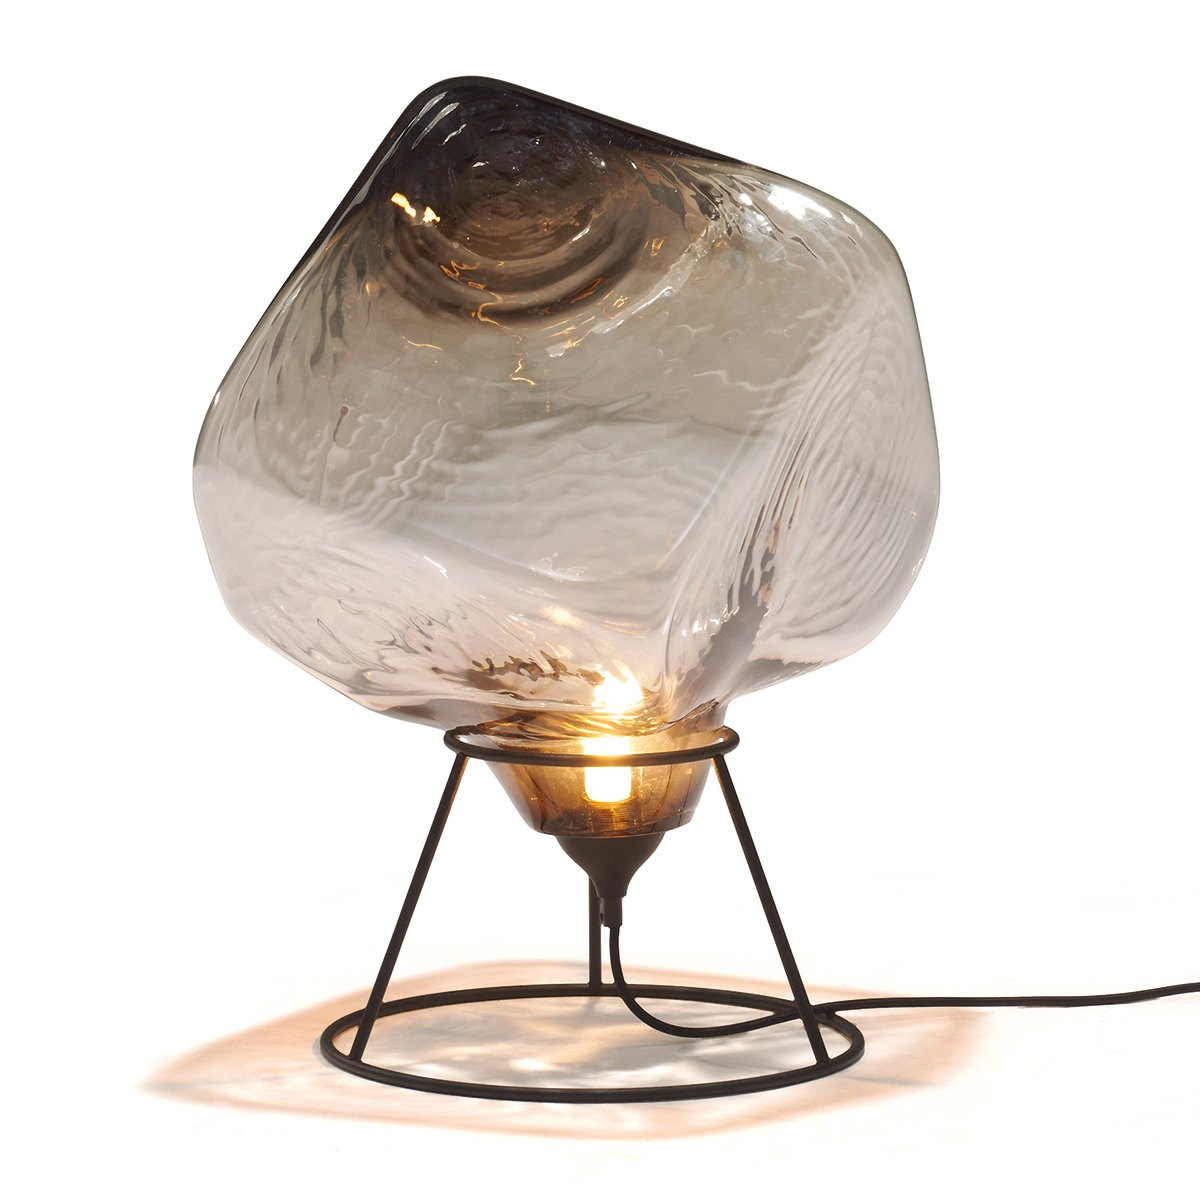 Linteloo Cubo lamp Small - Smoked Brown